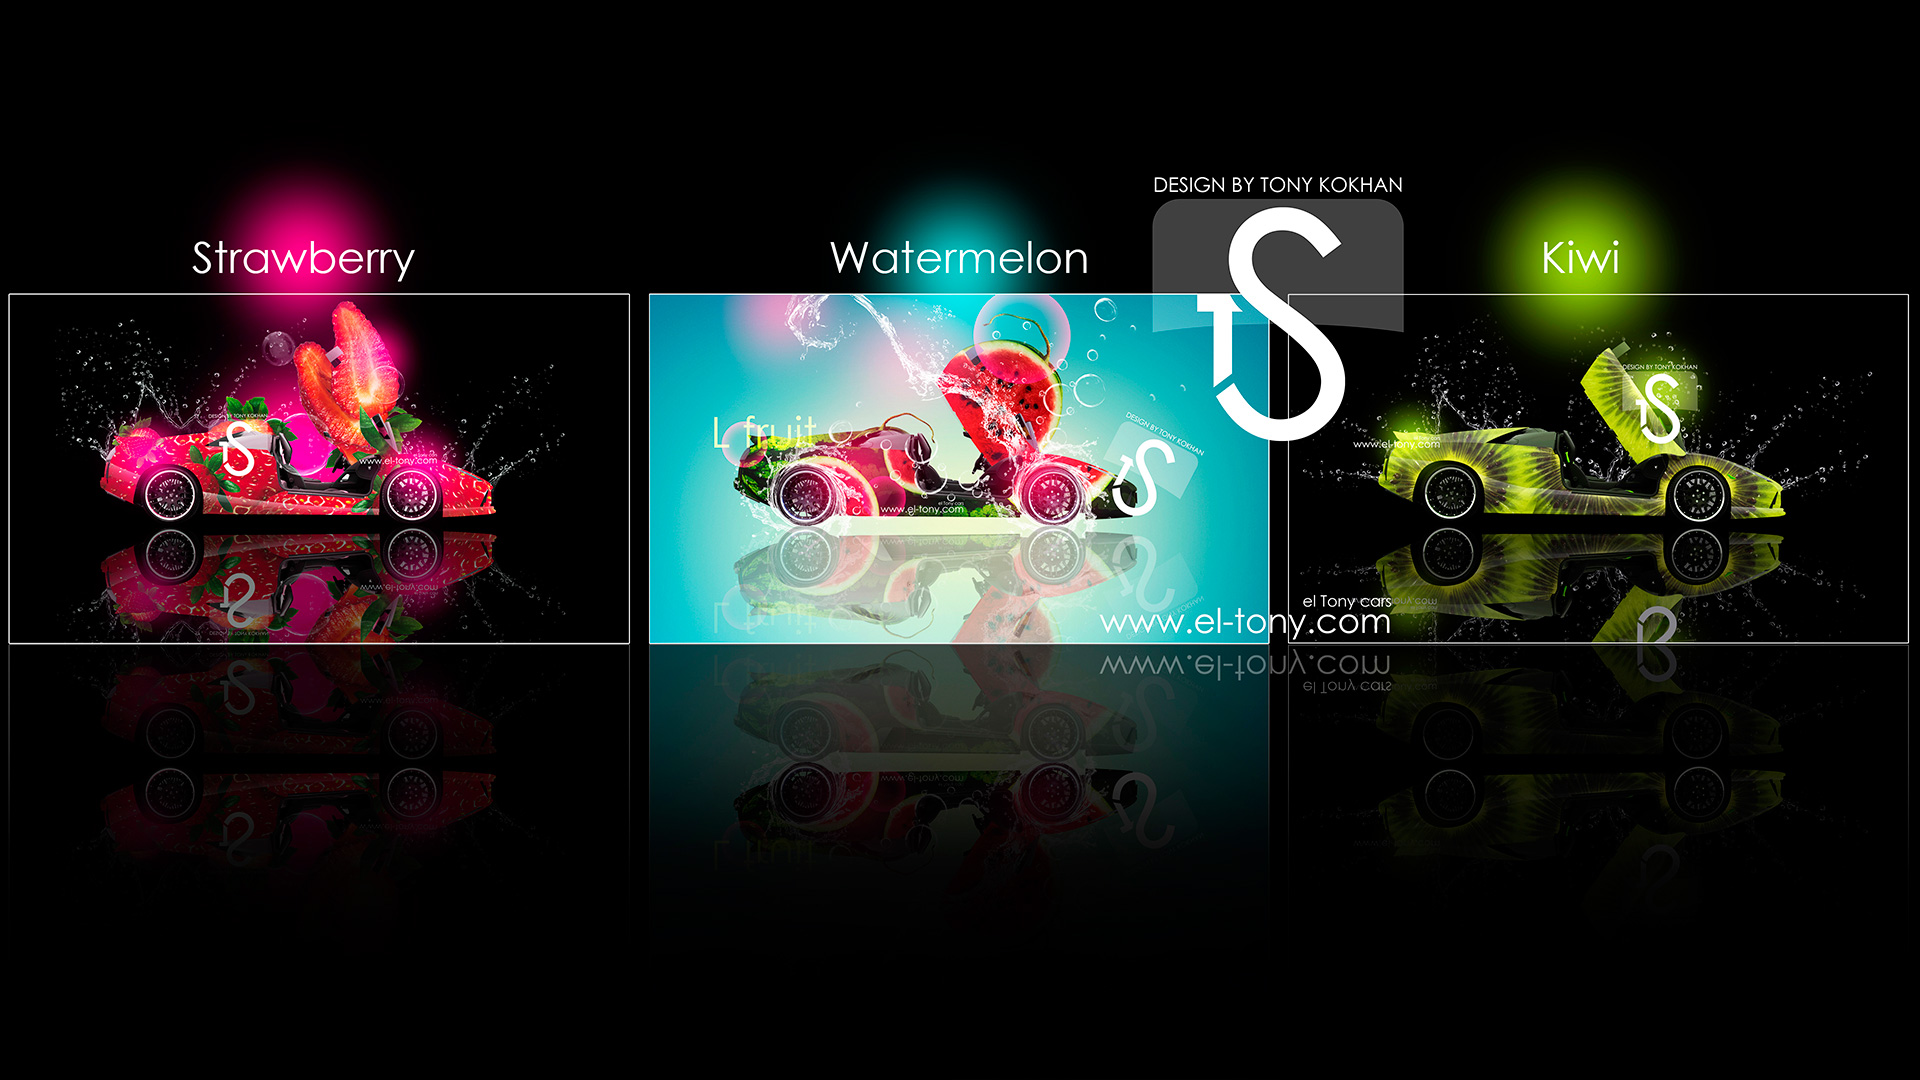 ... Lamborghini Murcielago Strawberry Kiwi Watermelon Fruit Car 2013